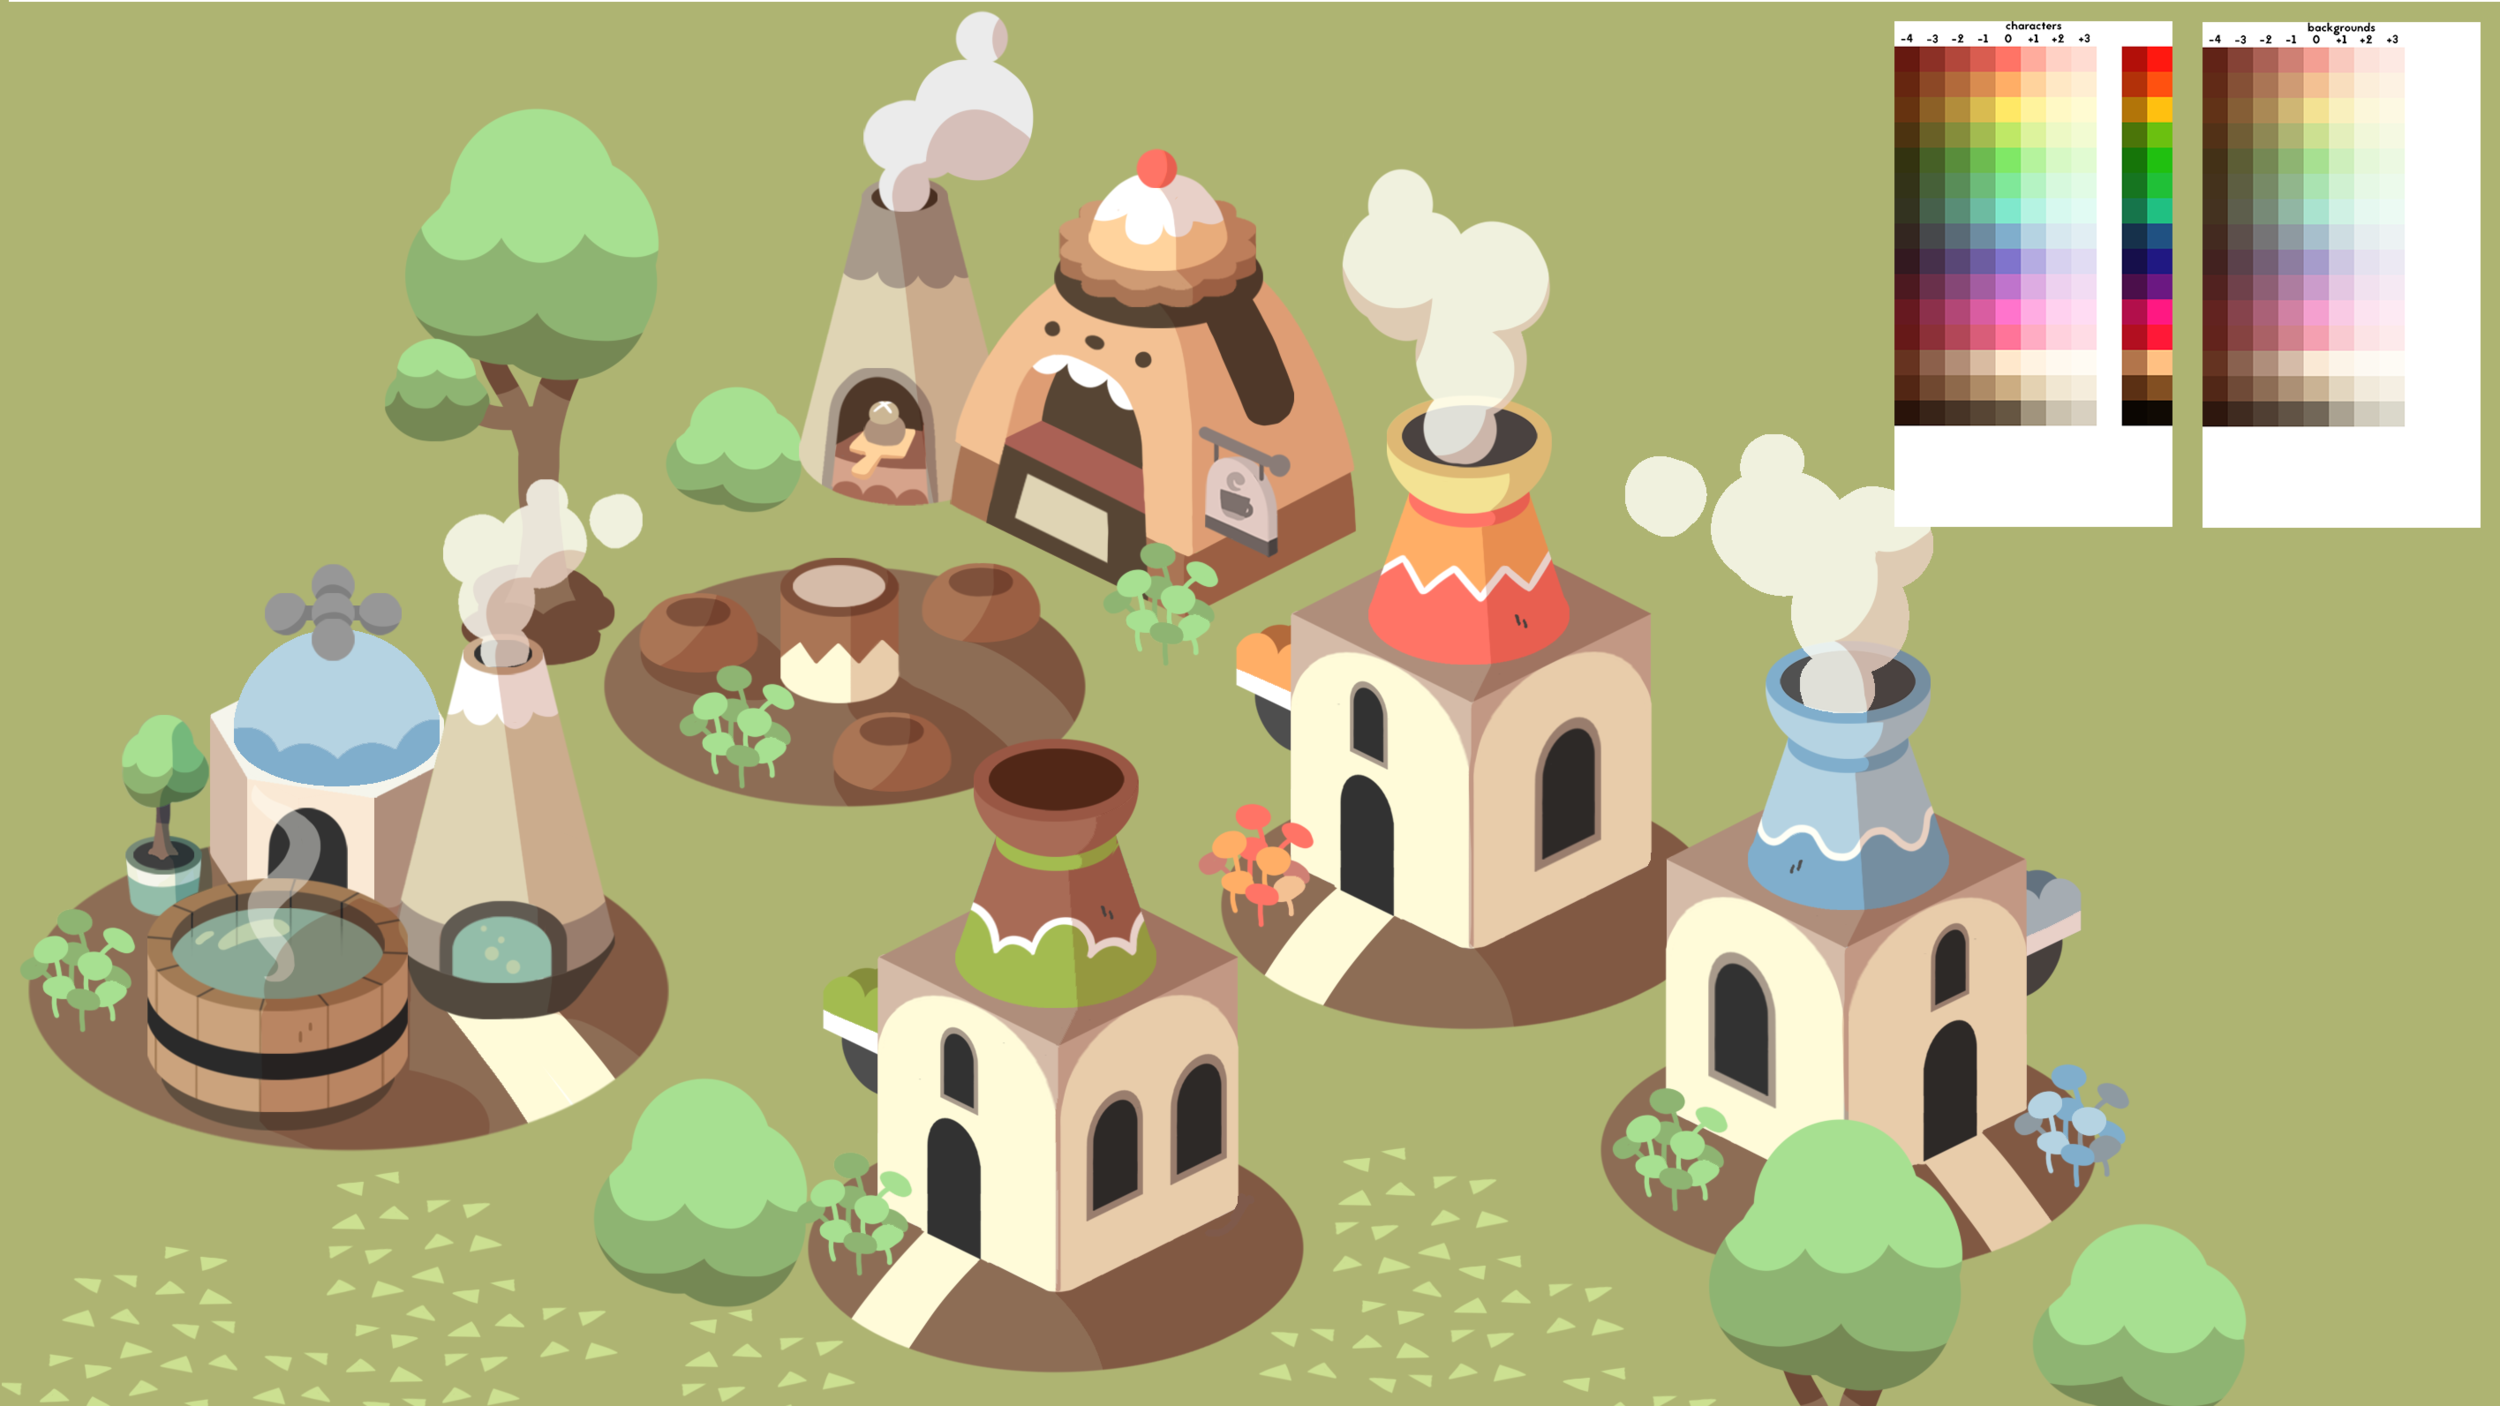 Some early building designs with the pastoral colour scheme.